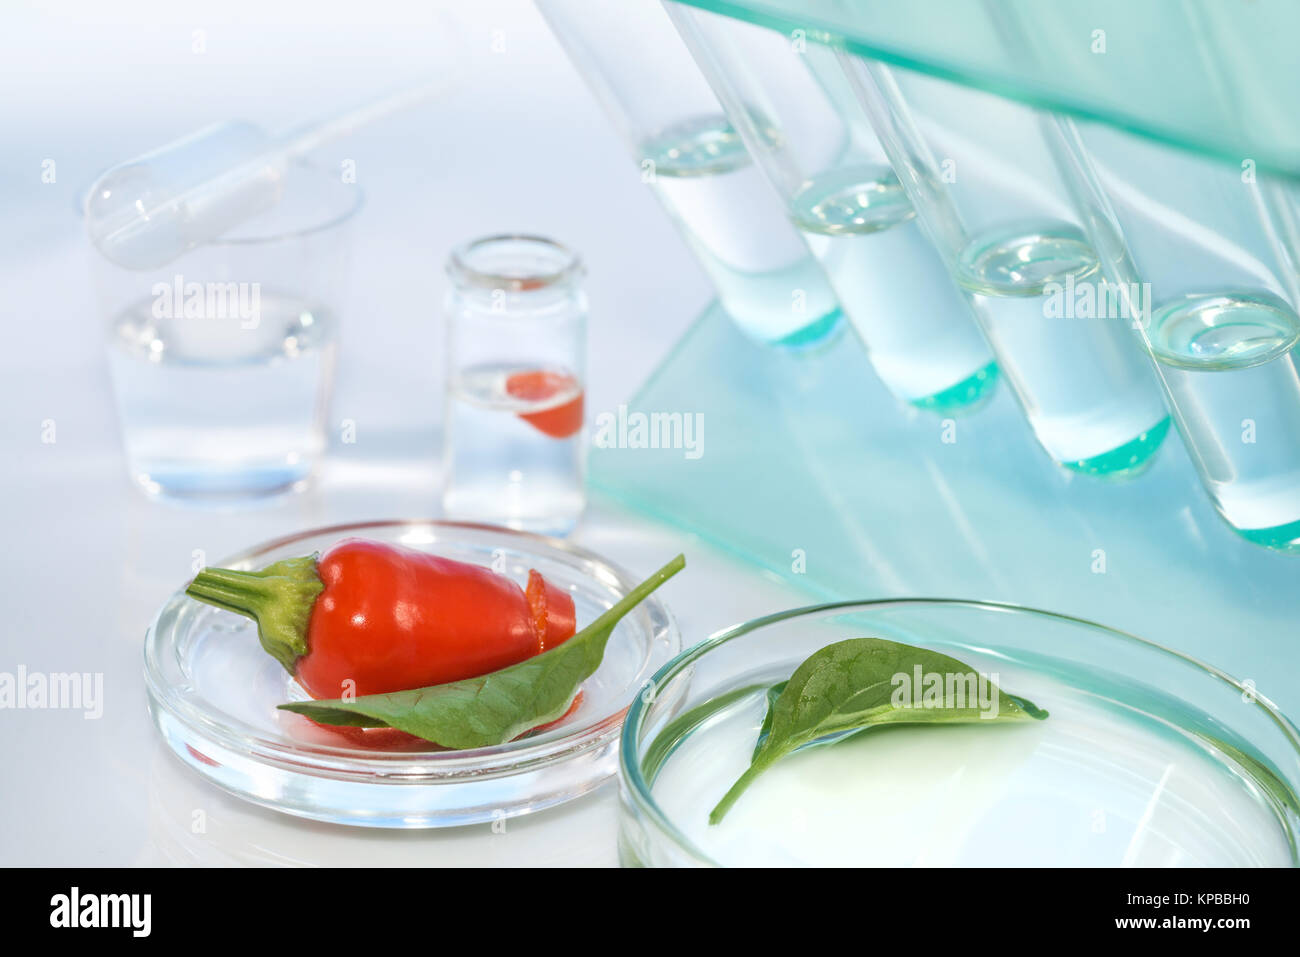 Testing red peppers for contamination with pesticides in laboratory - Stock Image